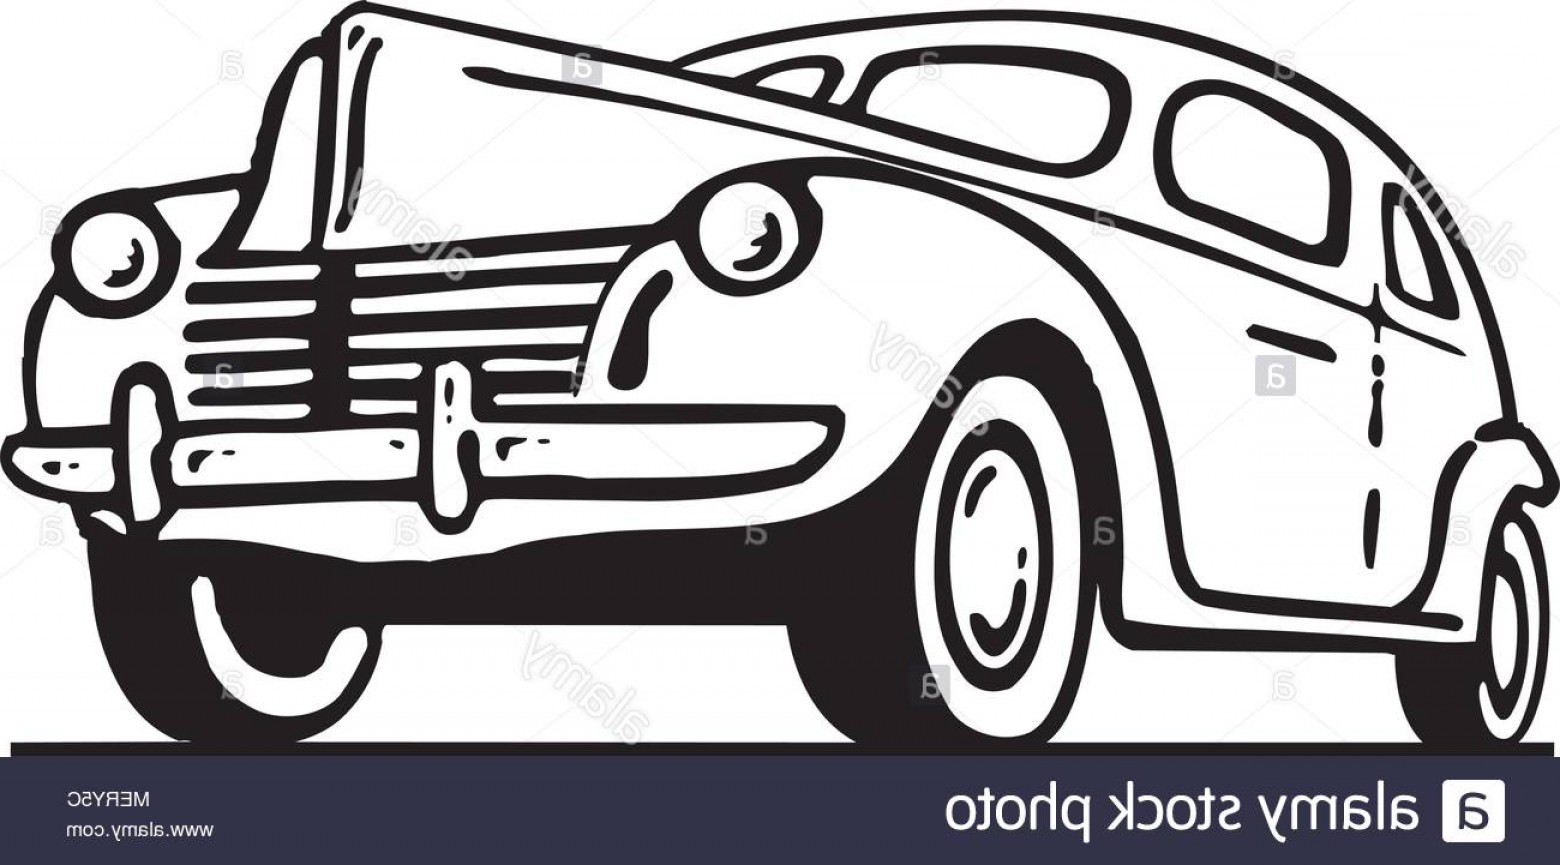 Ford Vector Art: Forties Ford Retro Ad Art Illustration Image